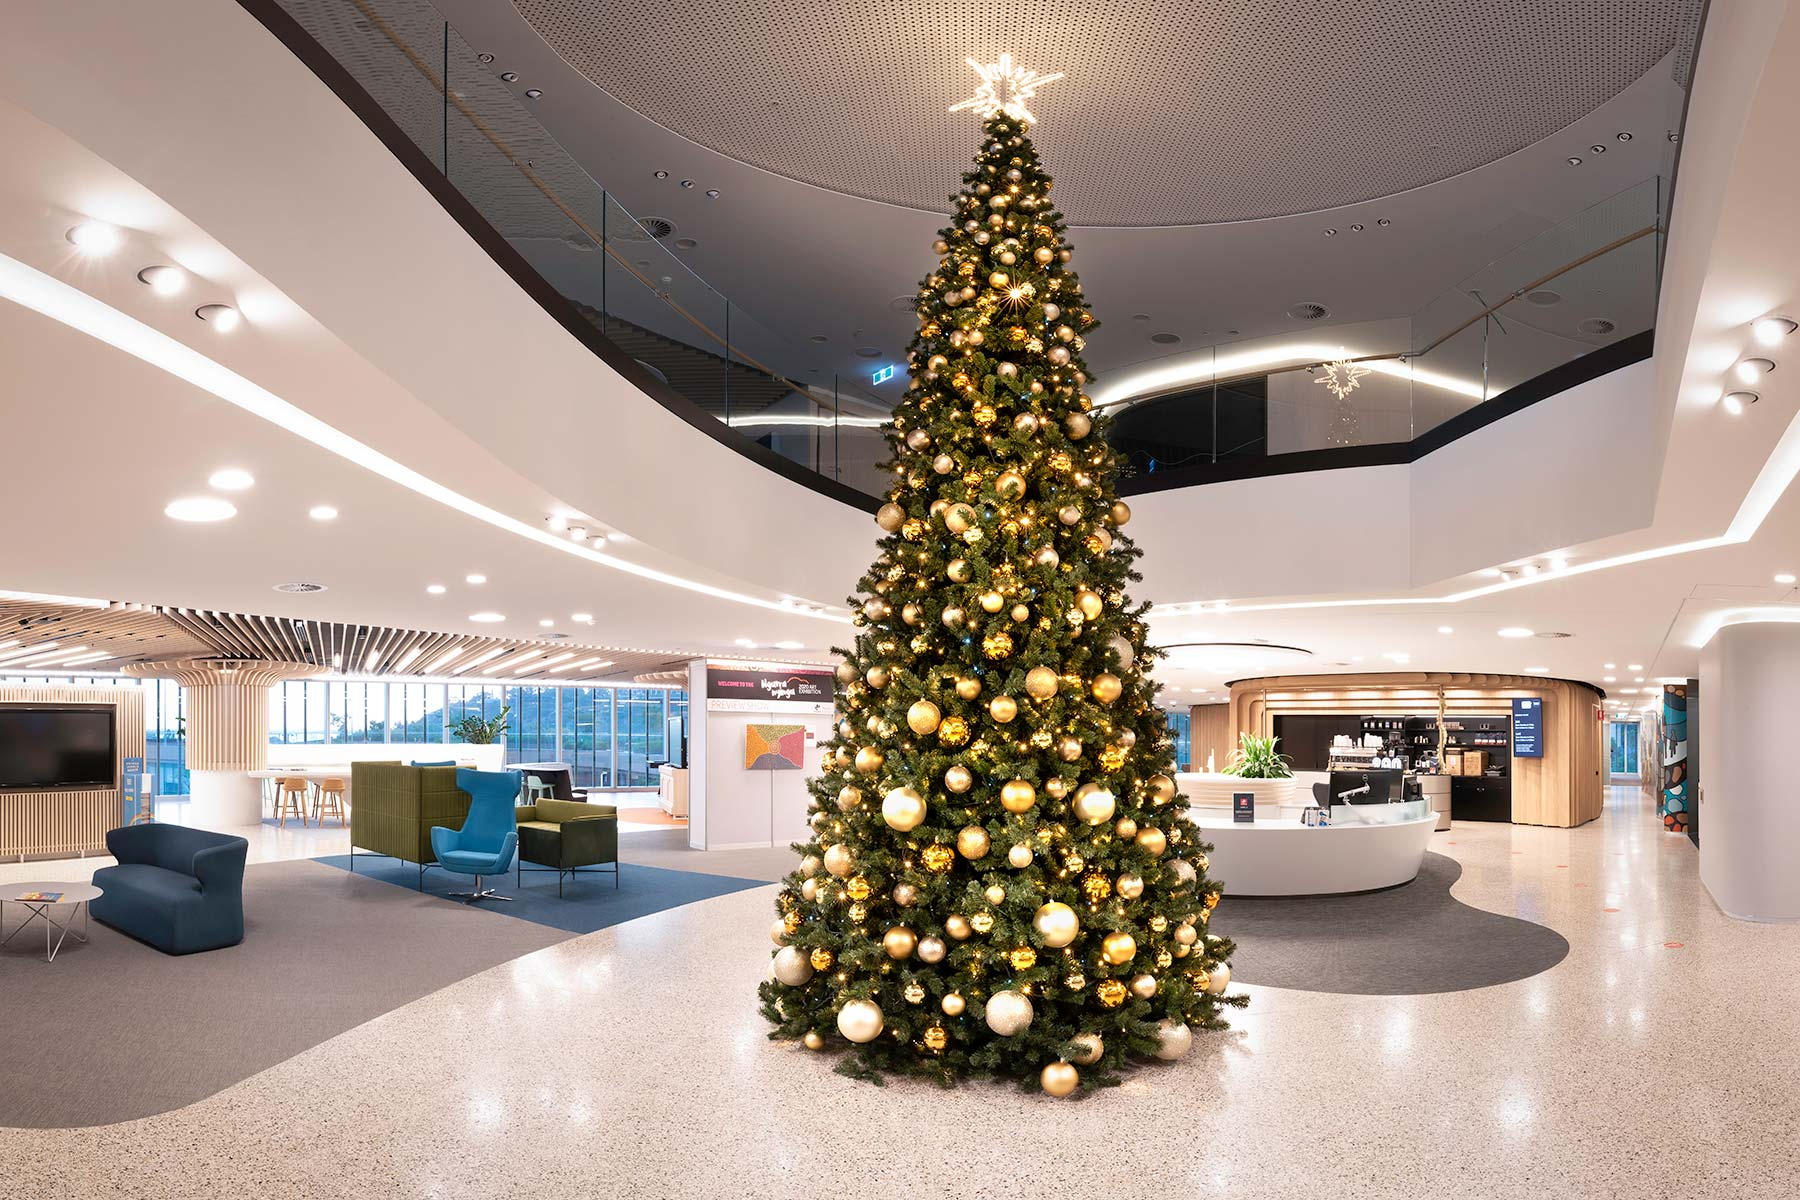 Six and a half metre tall Christmas tree decorated in rich golds in Woodside Energy's corporate foyer, Perth